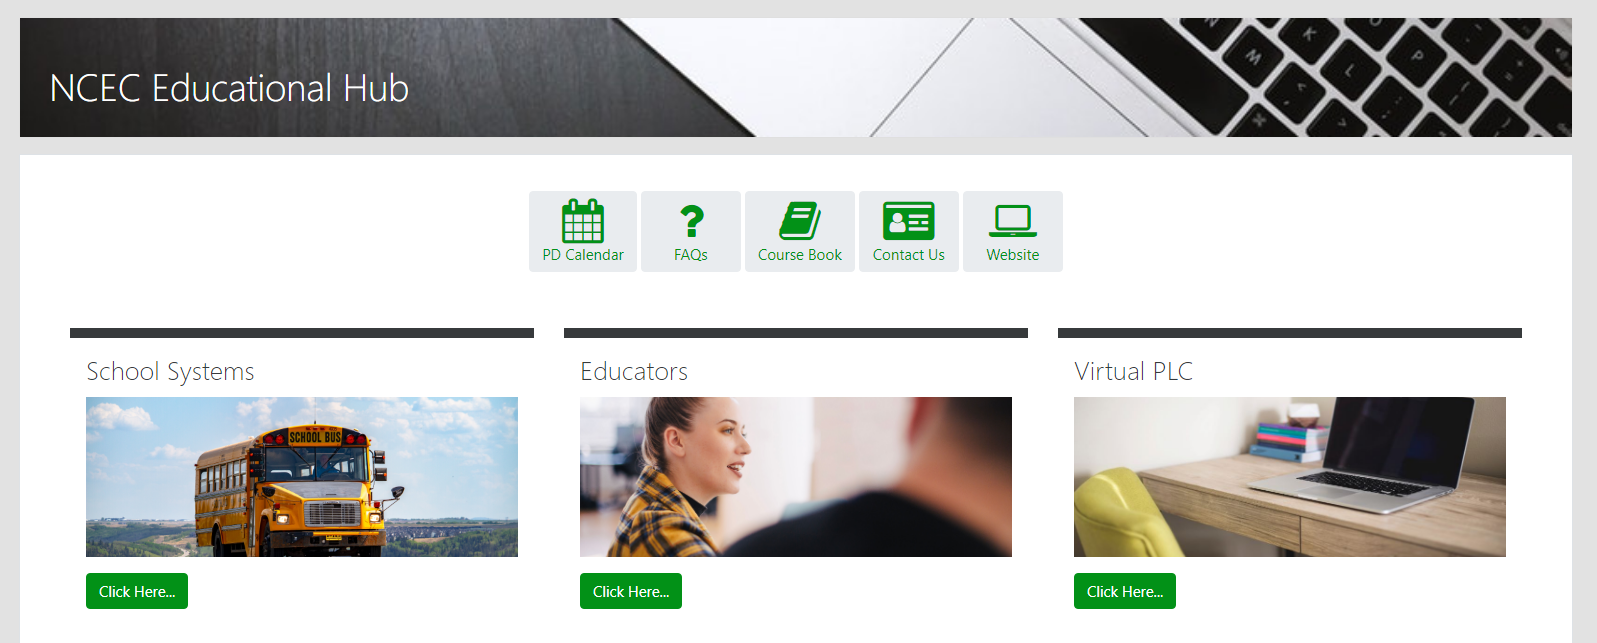 picture of keyboard and icons for the NCEC Educational Hub website